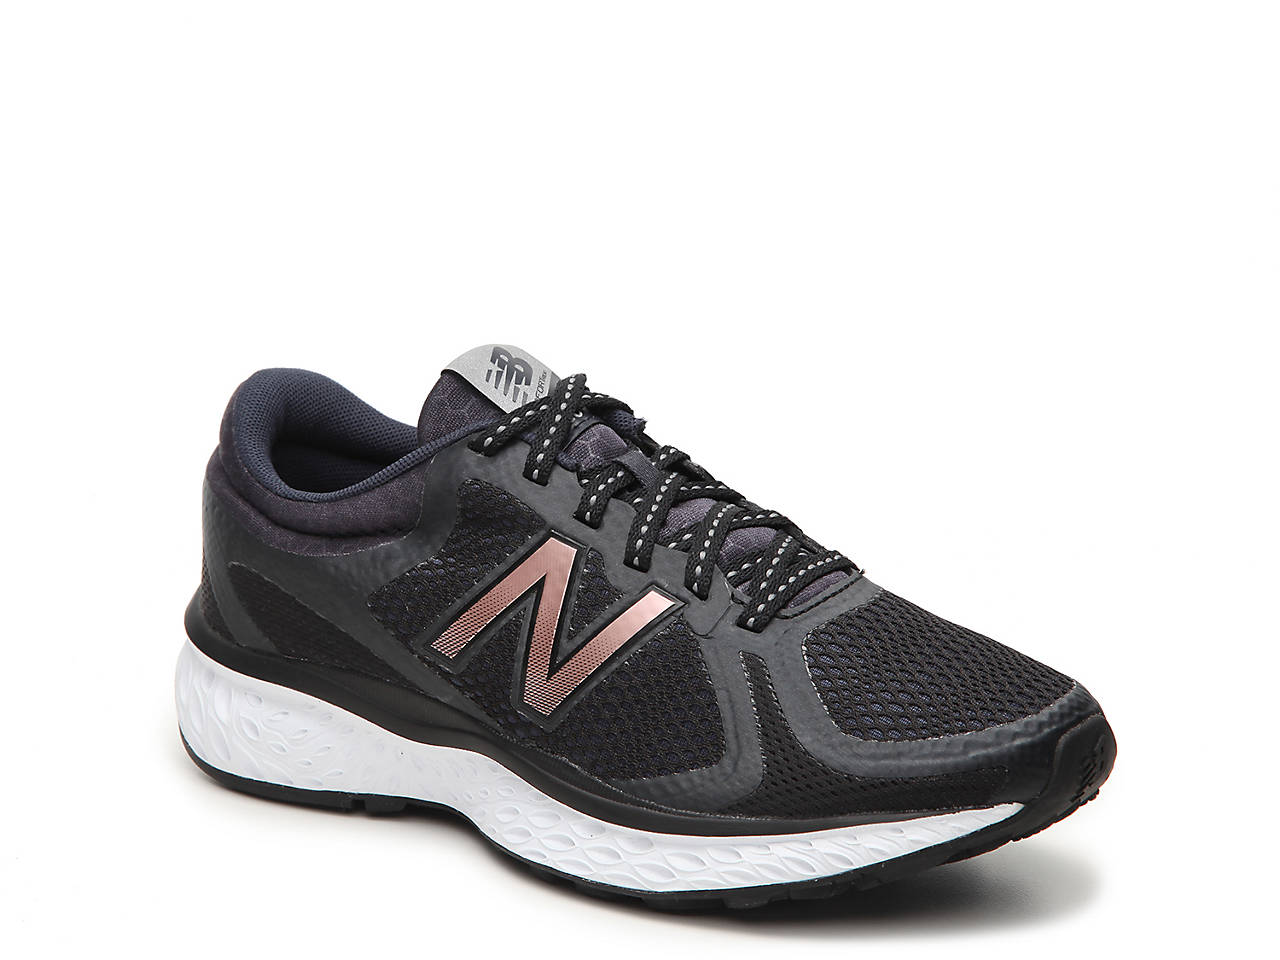 New Balance 720 v4 Lightweight Running Shoe - Women s Women s Shoes ... c55c07a4f828